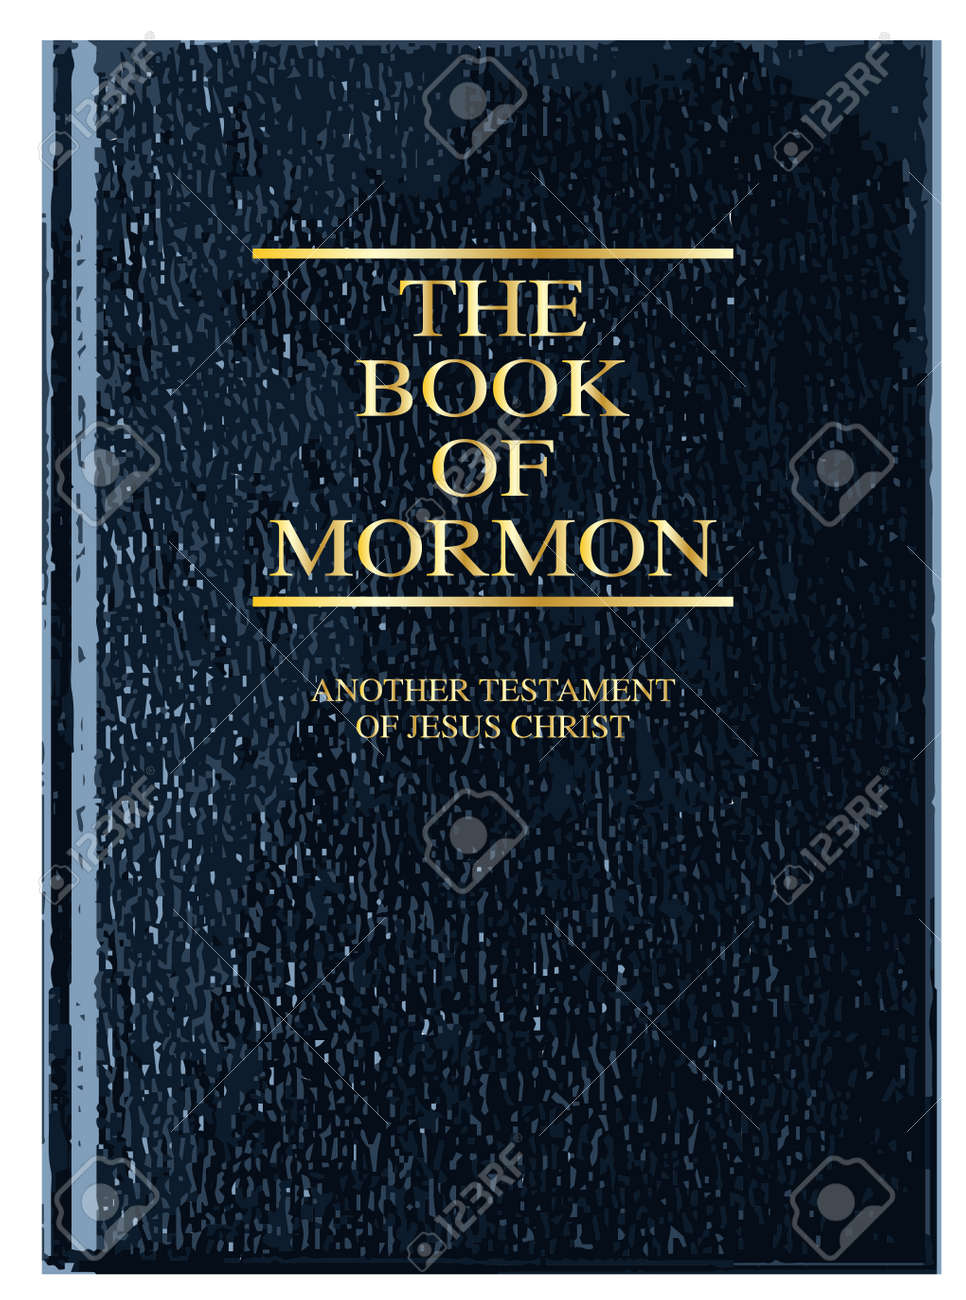 Where Is The Illustration On The Front Cover Of A Book ~ The front cover of the book of mormon over a white background